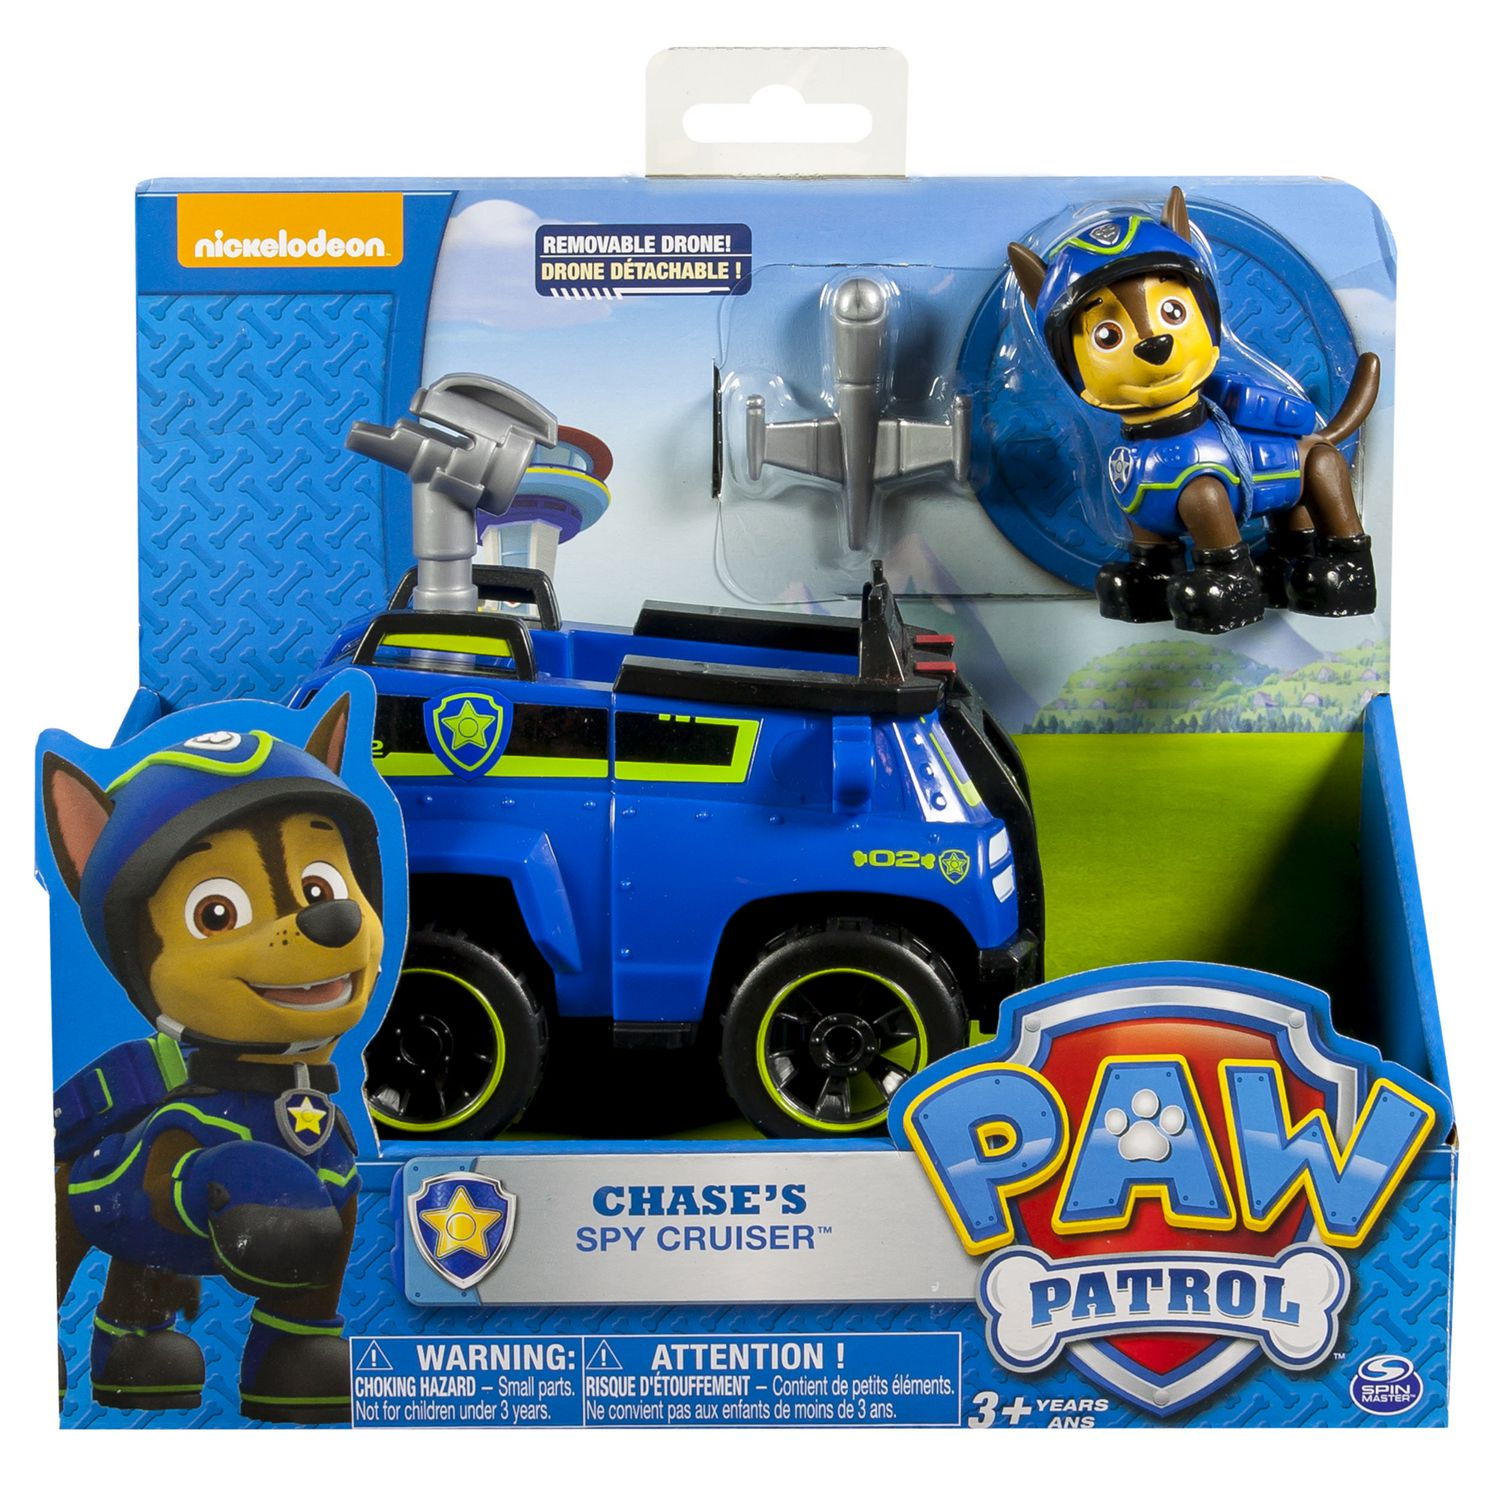 PAW Patrol Chase s Spy Cruiser Toy Vehicle and Action Figure